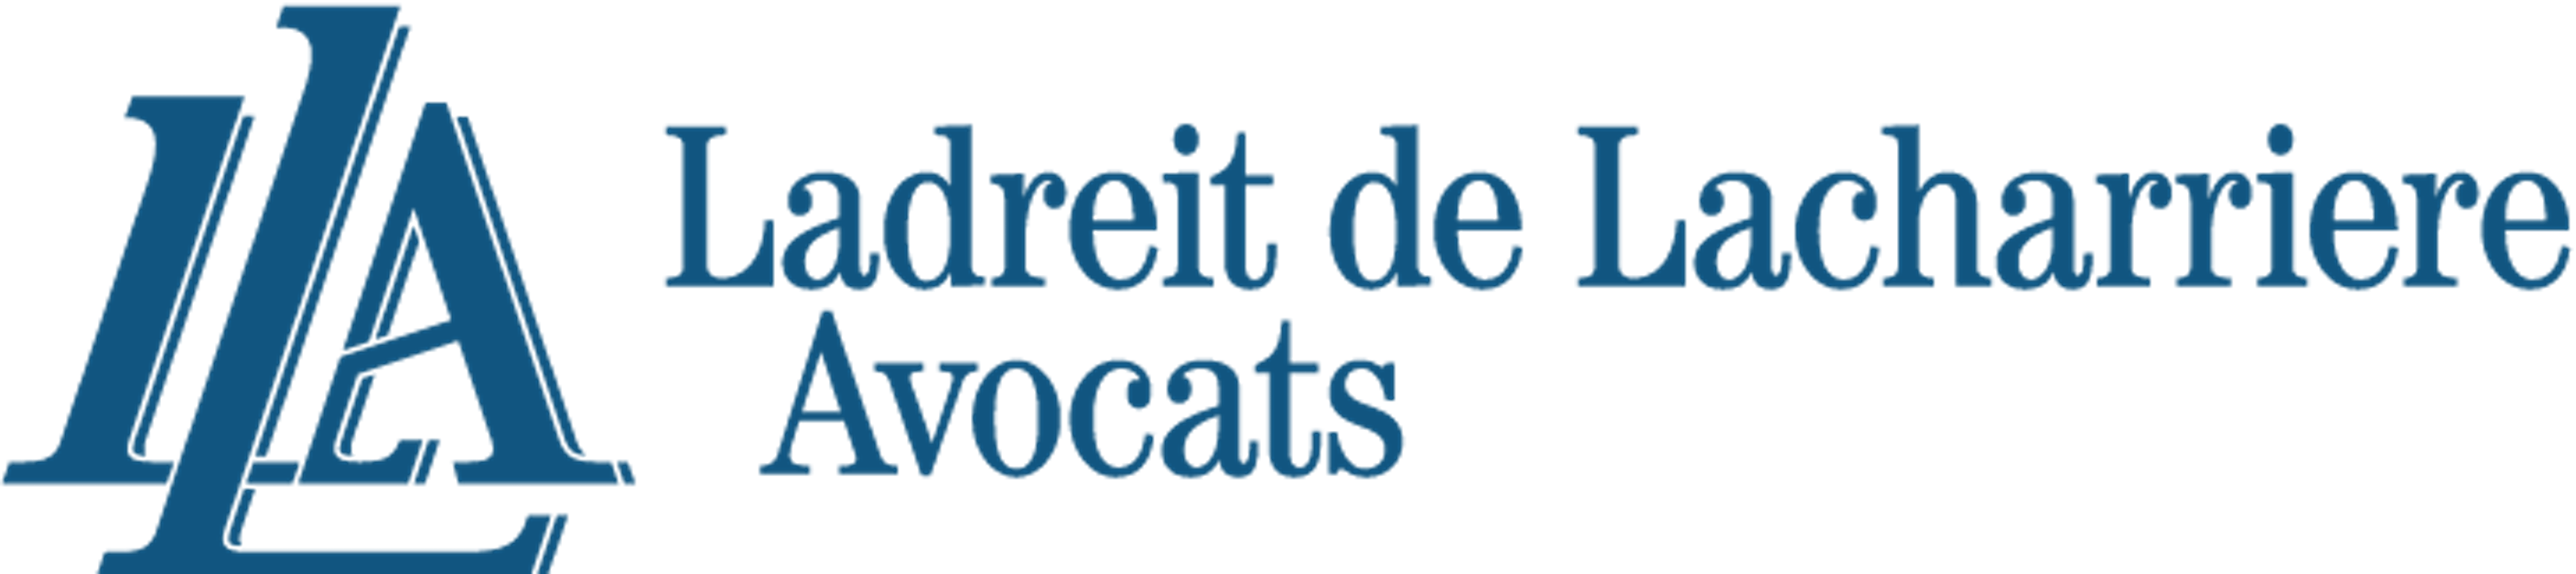 Lacharriere avocats